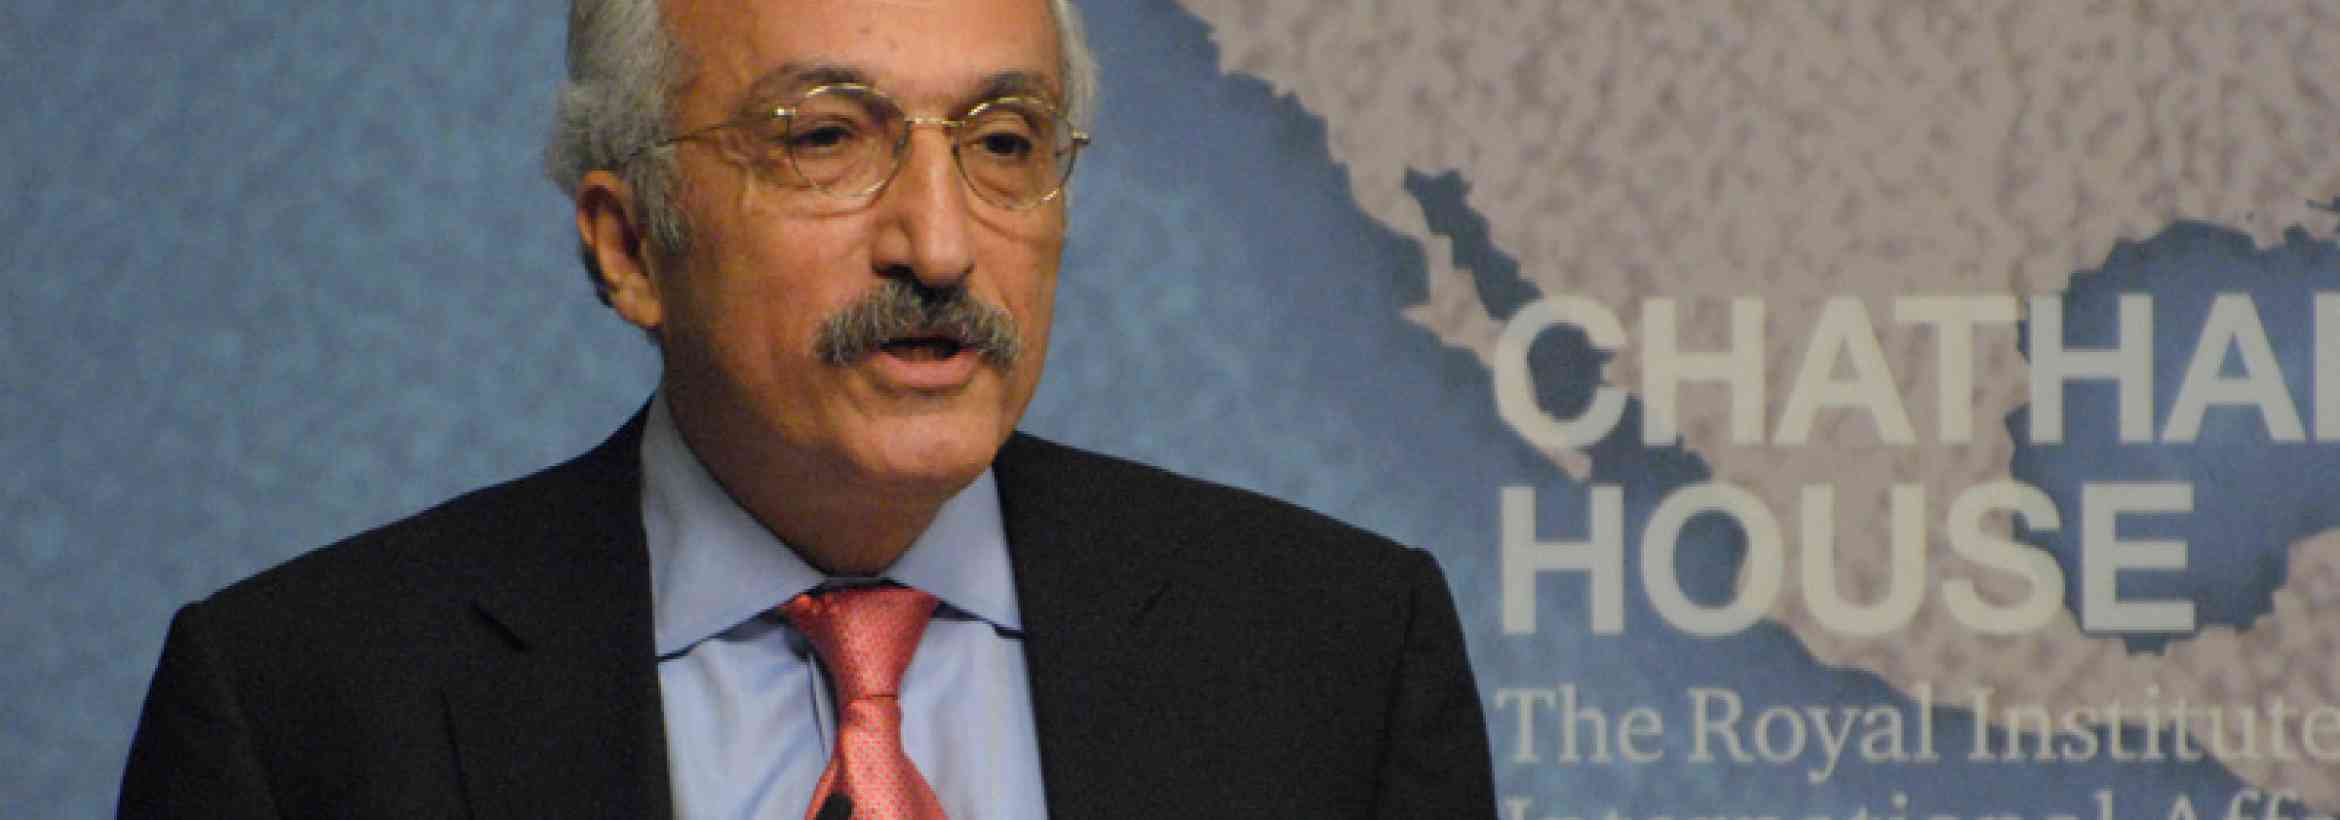 Abbas Milani at Chathamhouse